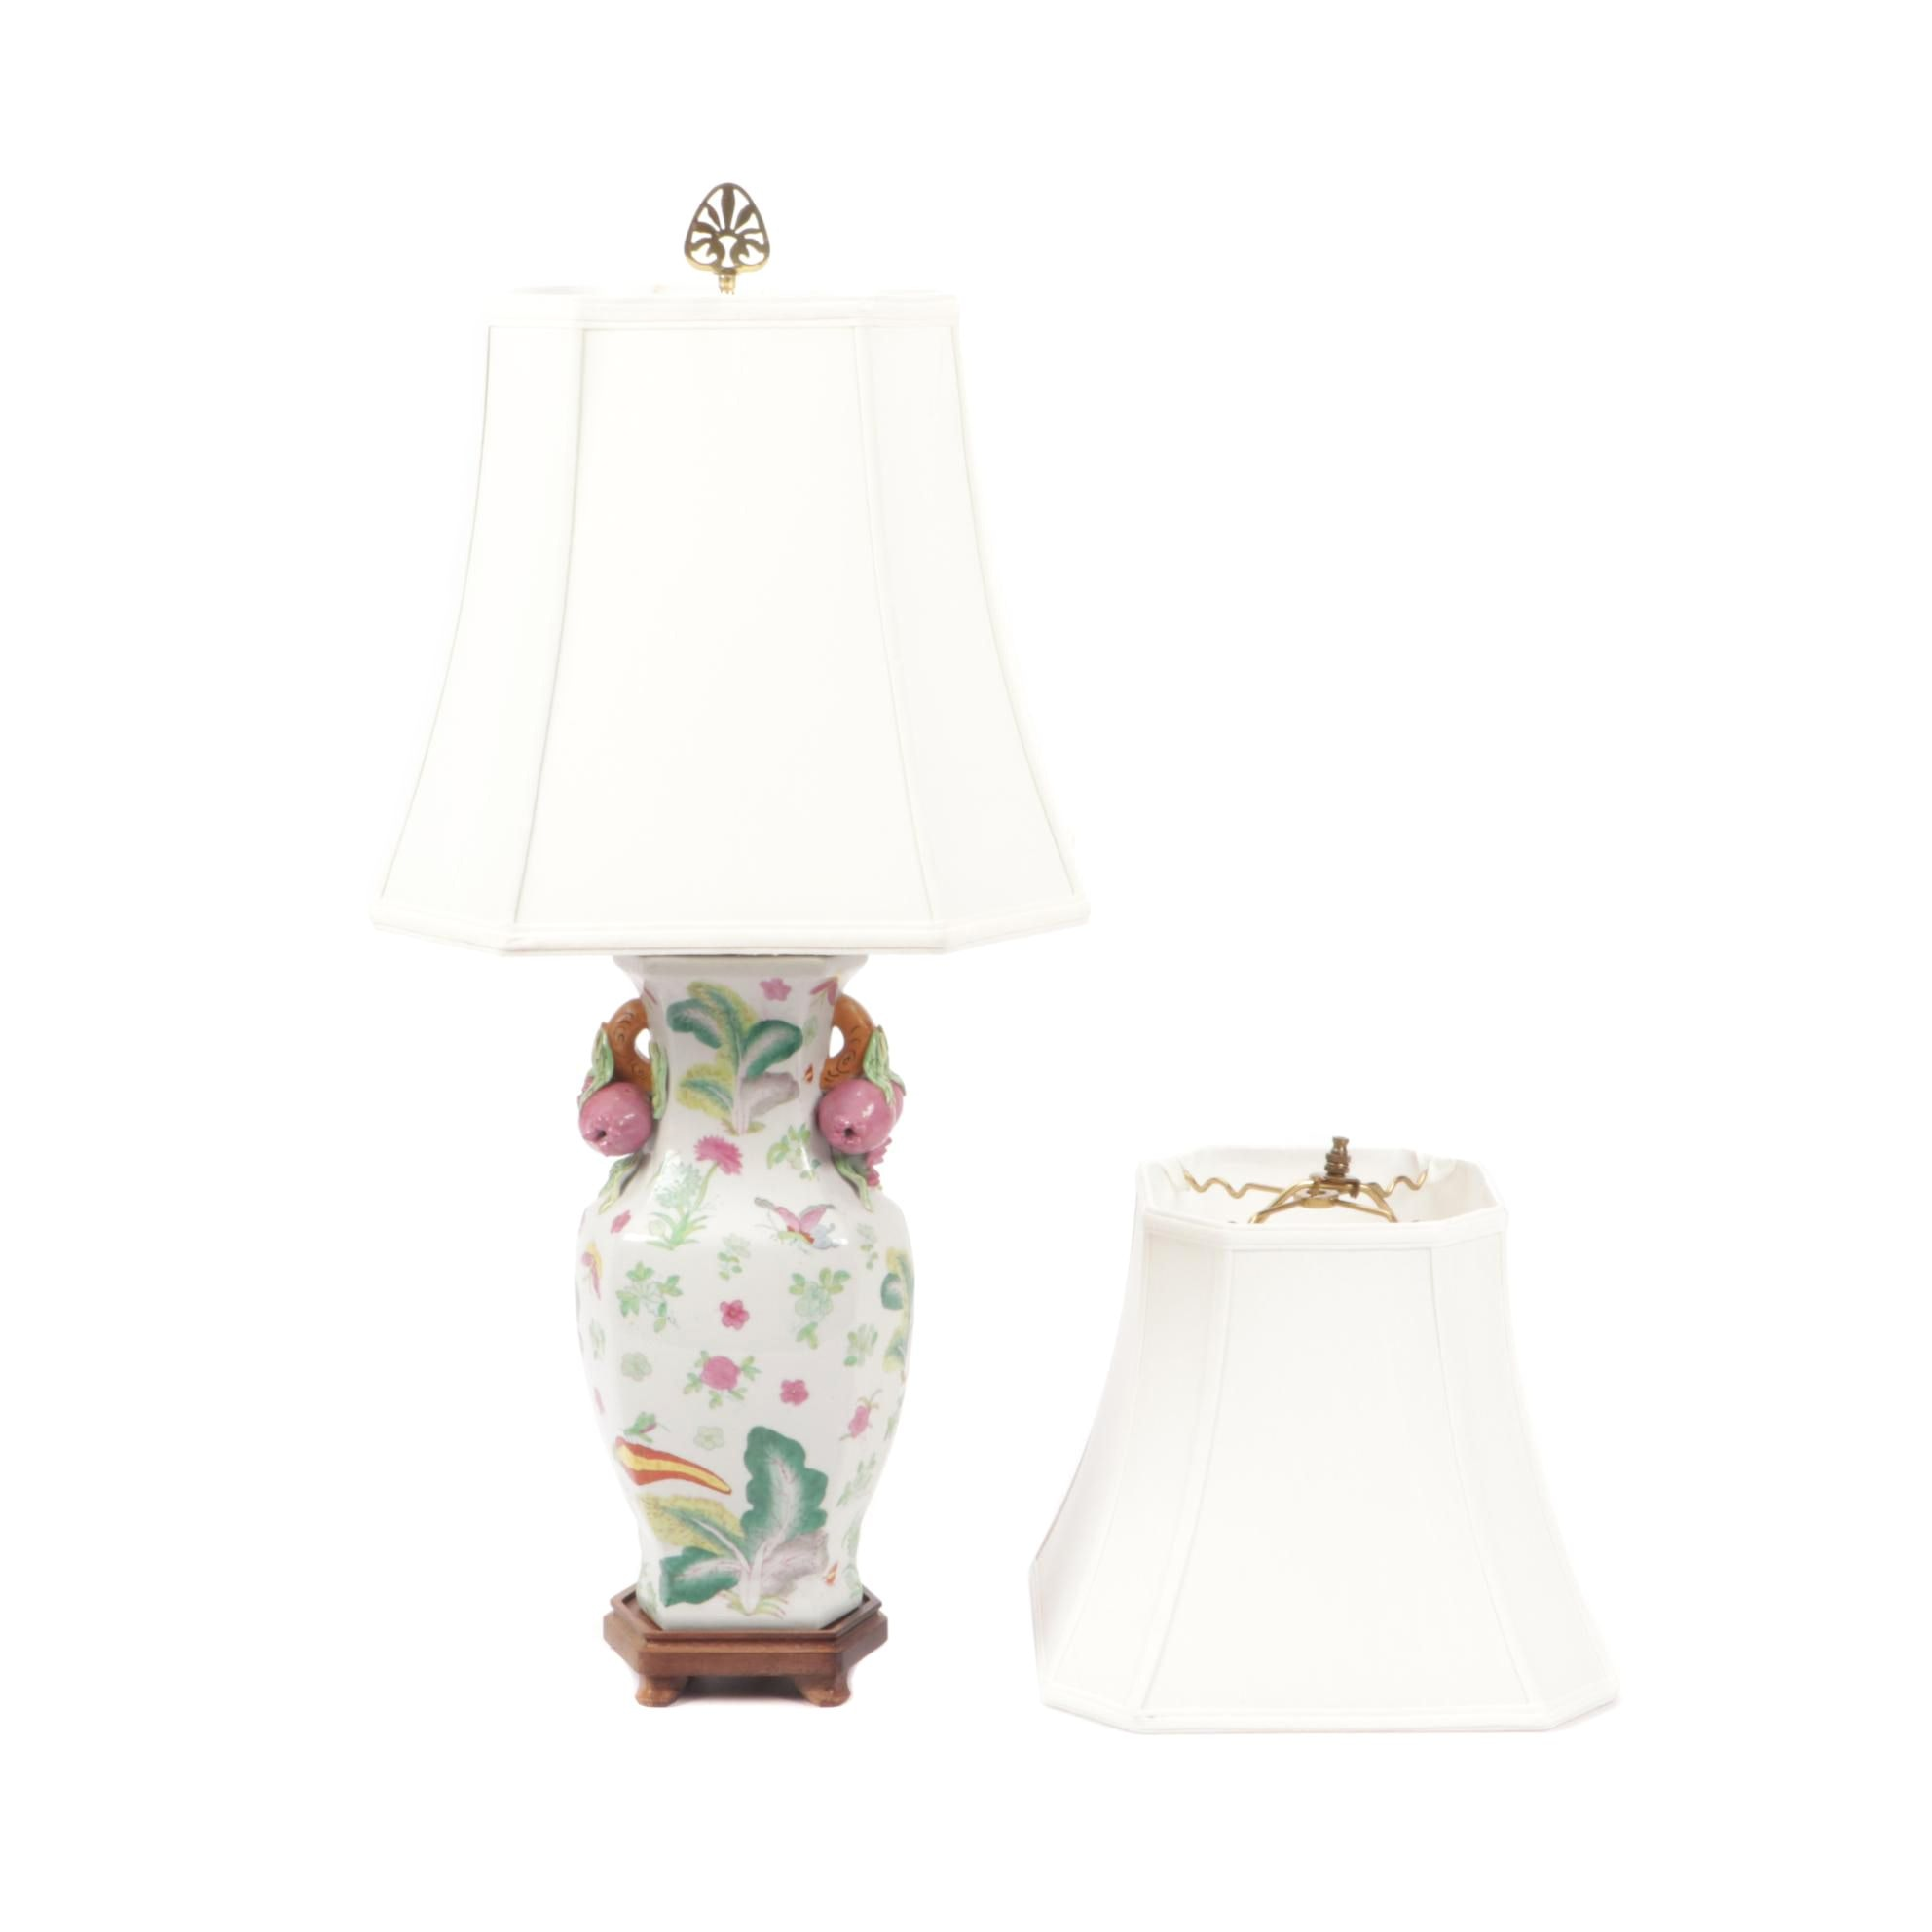 Painted Ceramic Table Lamp with Two Shades